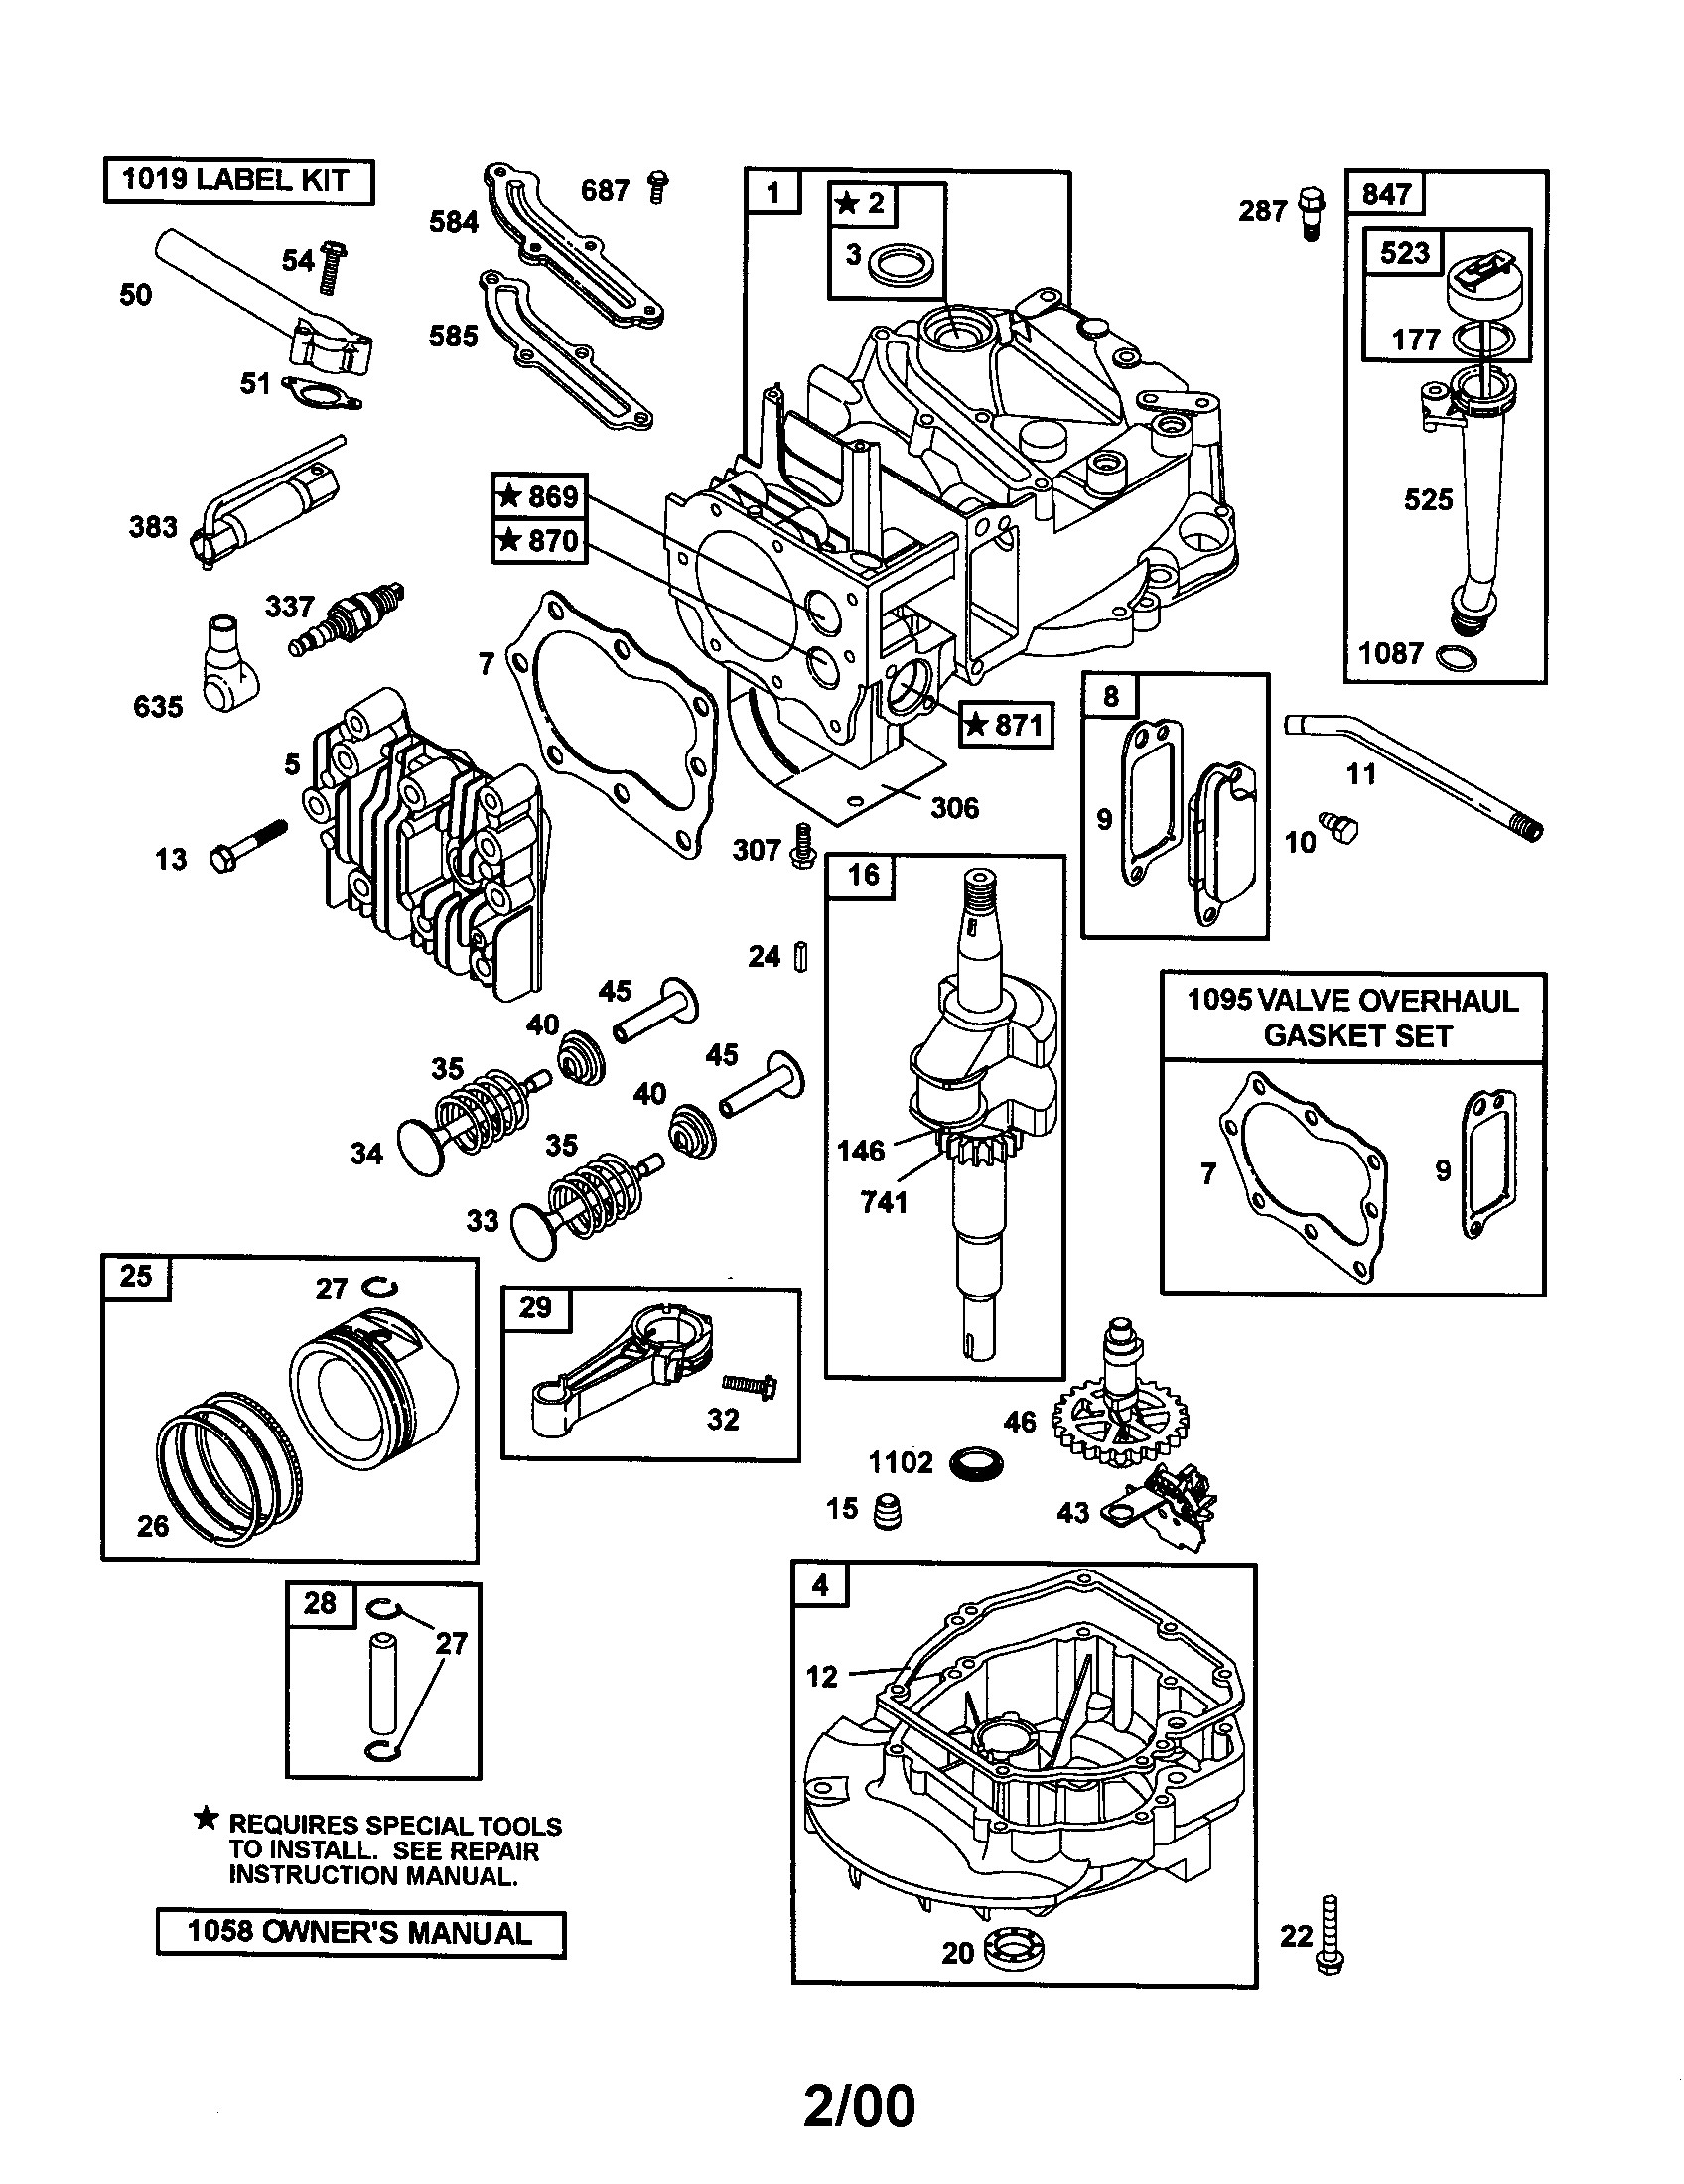 hight resolution of 11 hp briggs and stratton engine diagram amazing briggs stratton engine parts diagram ideas electrical of